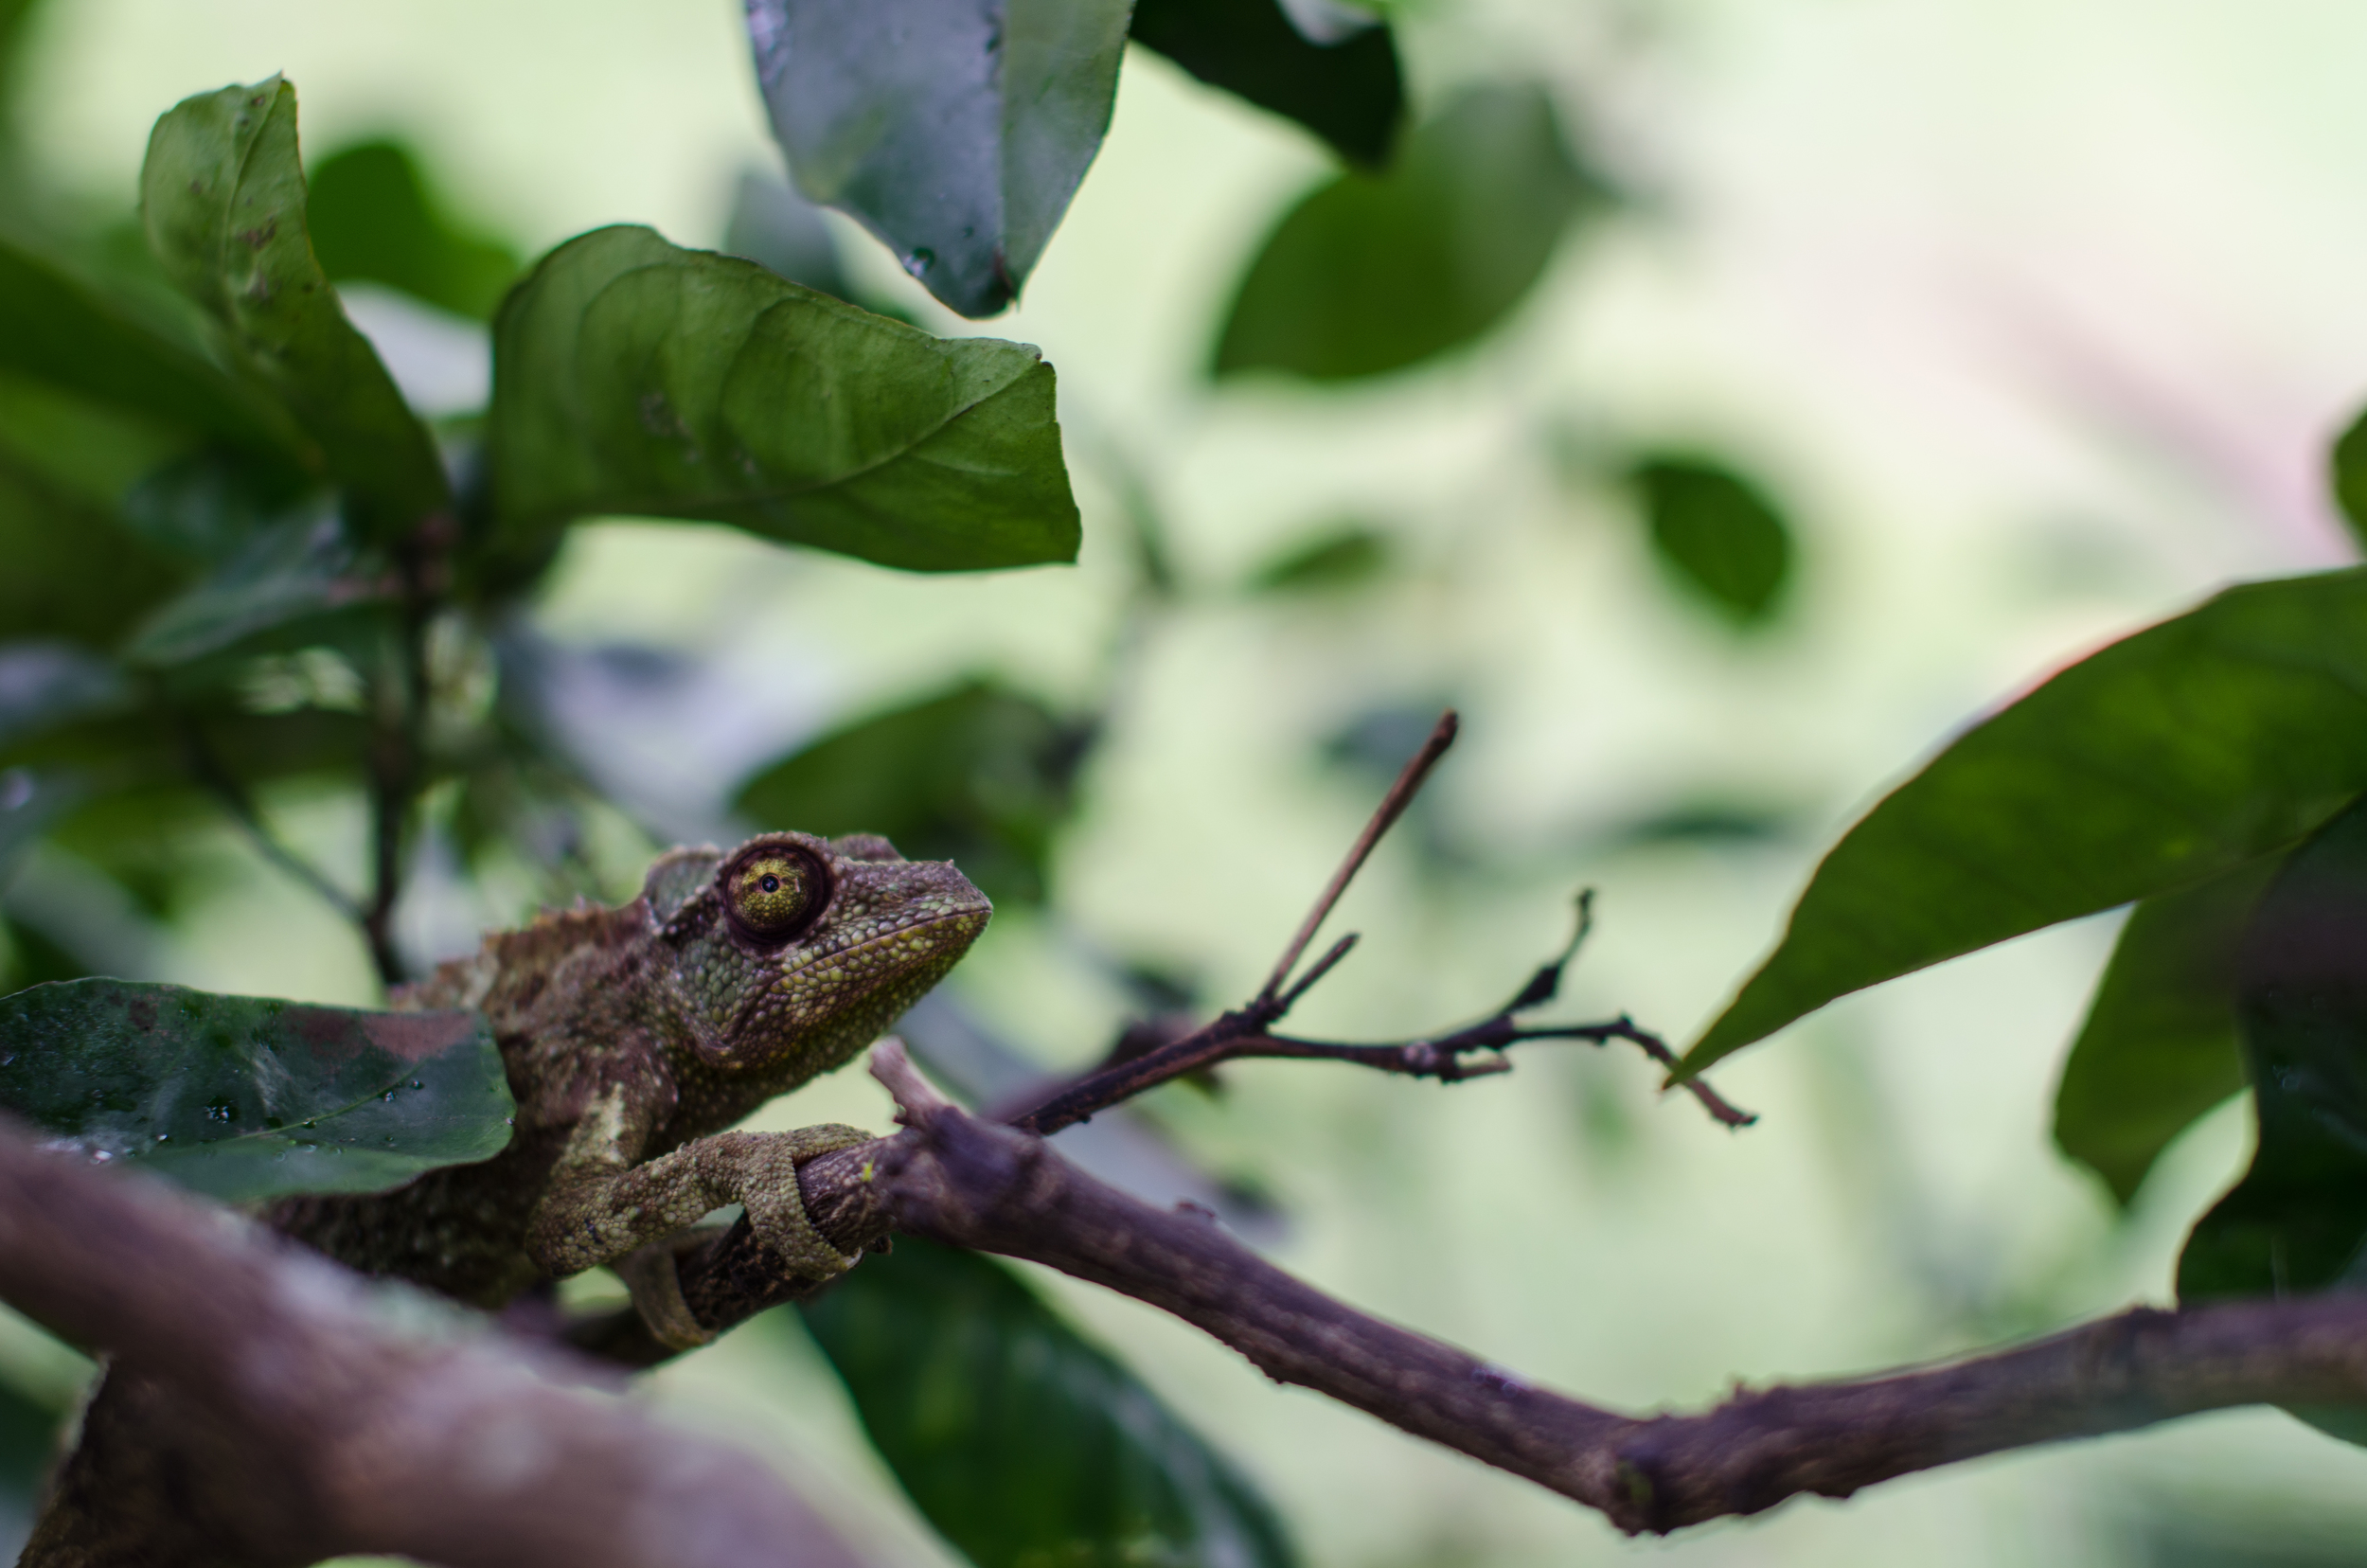 We found this chameleonfriend on an orange tree at the plantation.